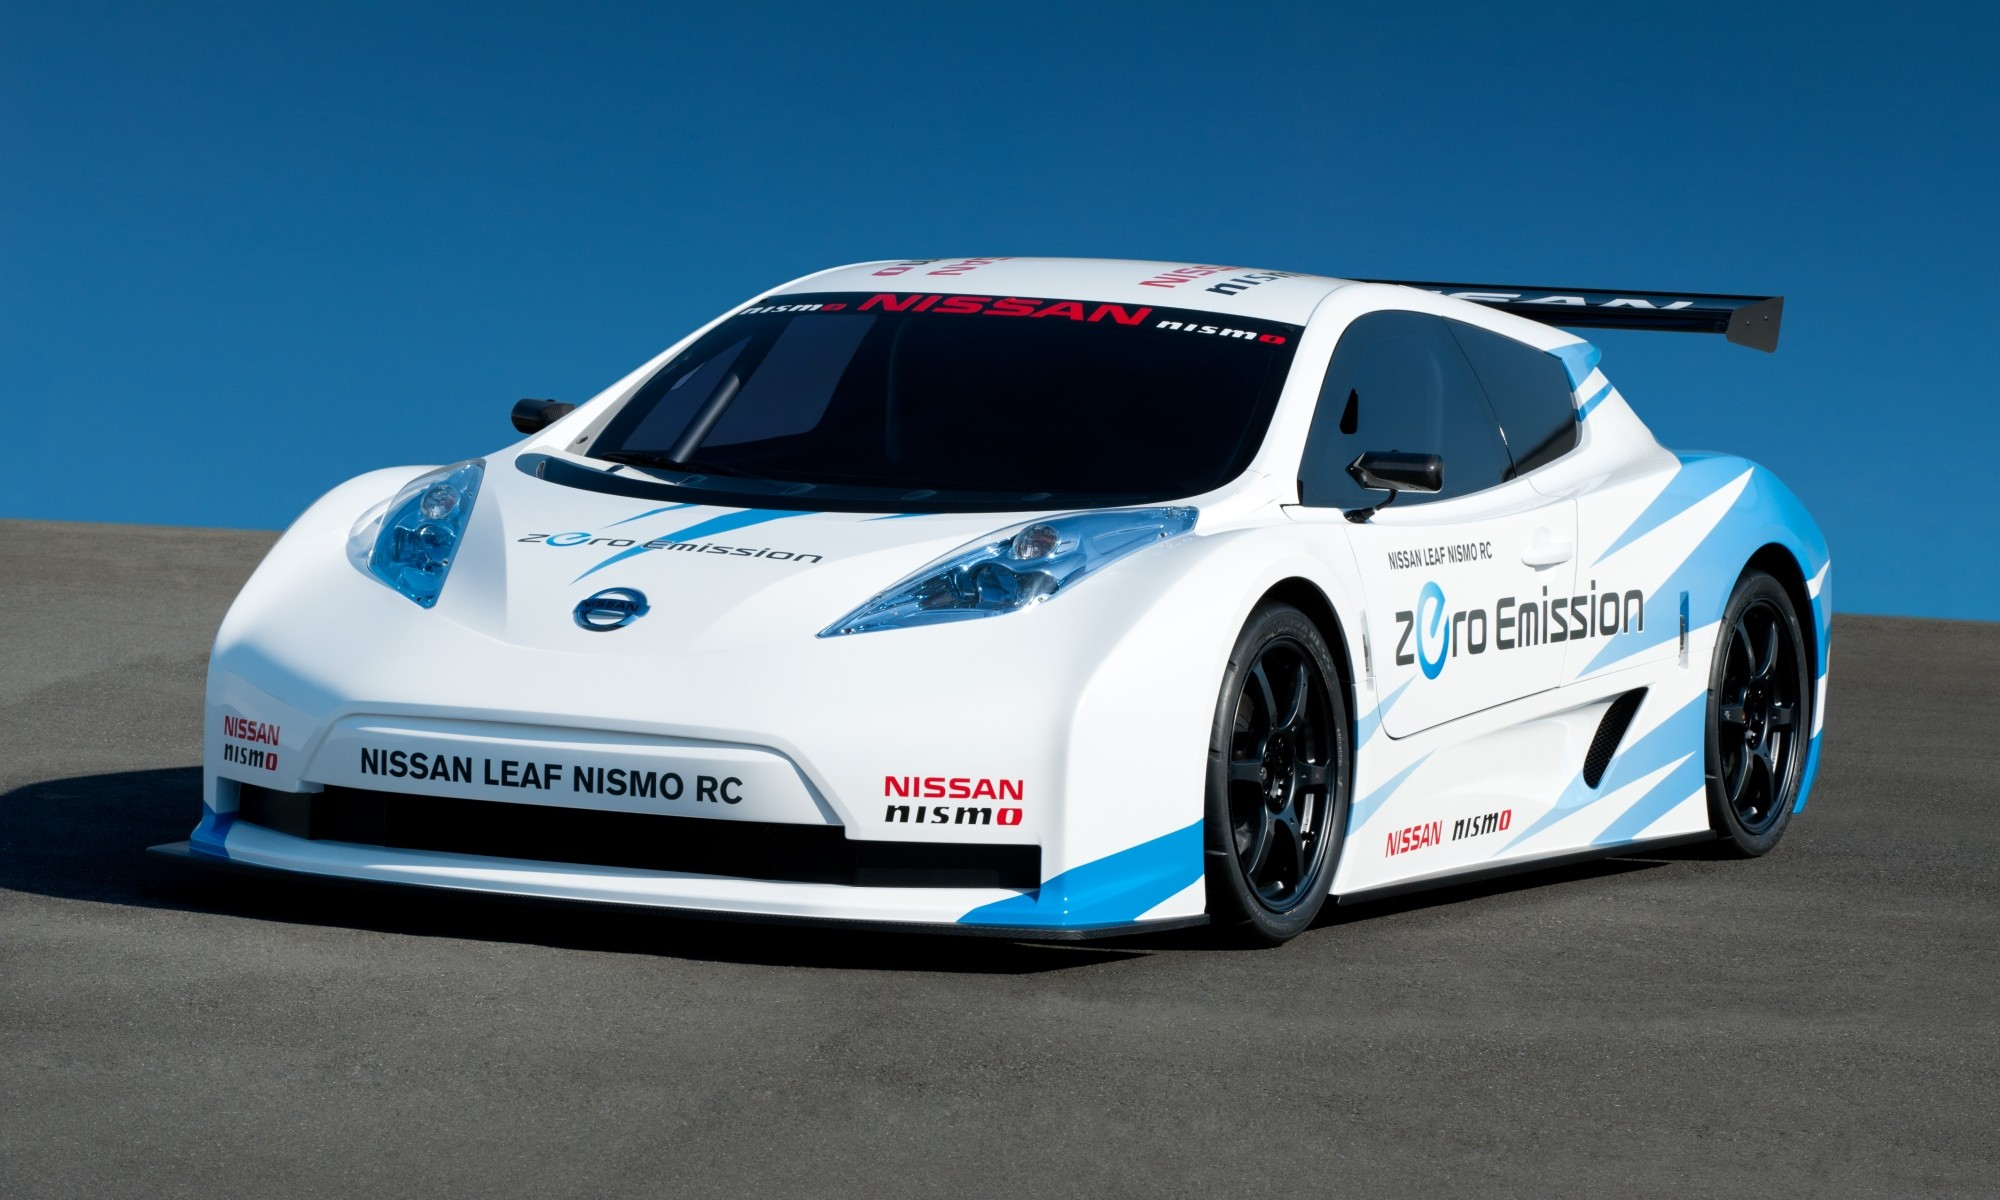 It's a Nissan Leaf, but not as we know it